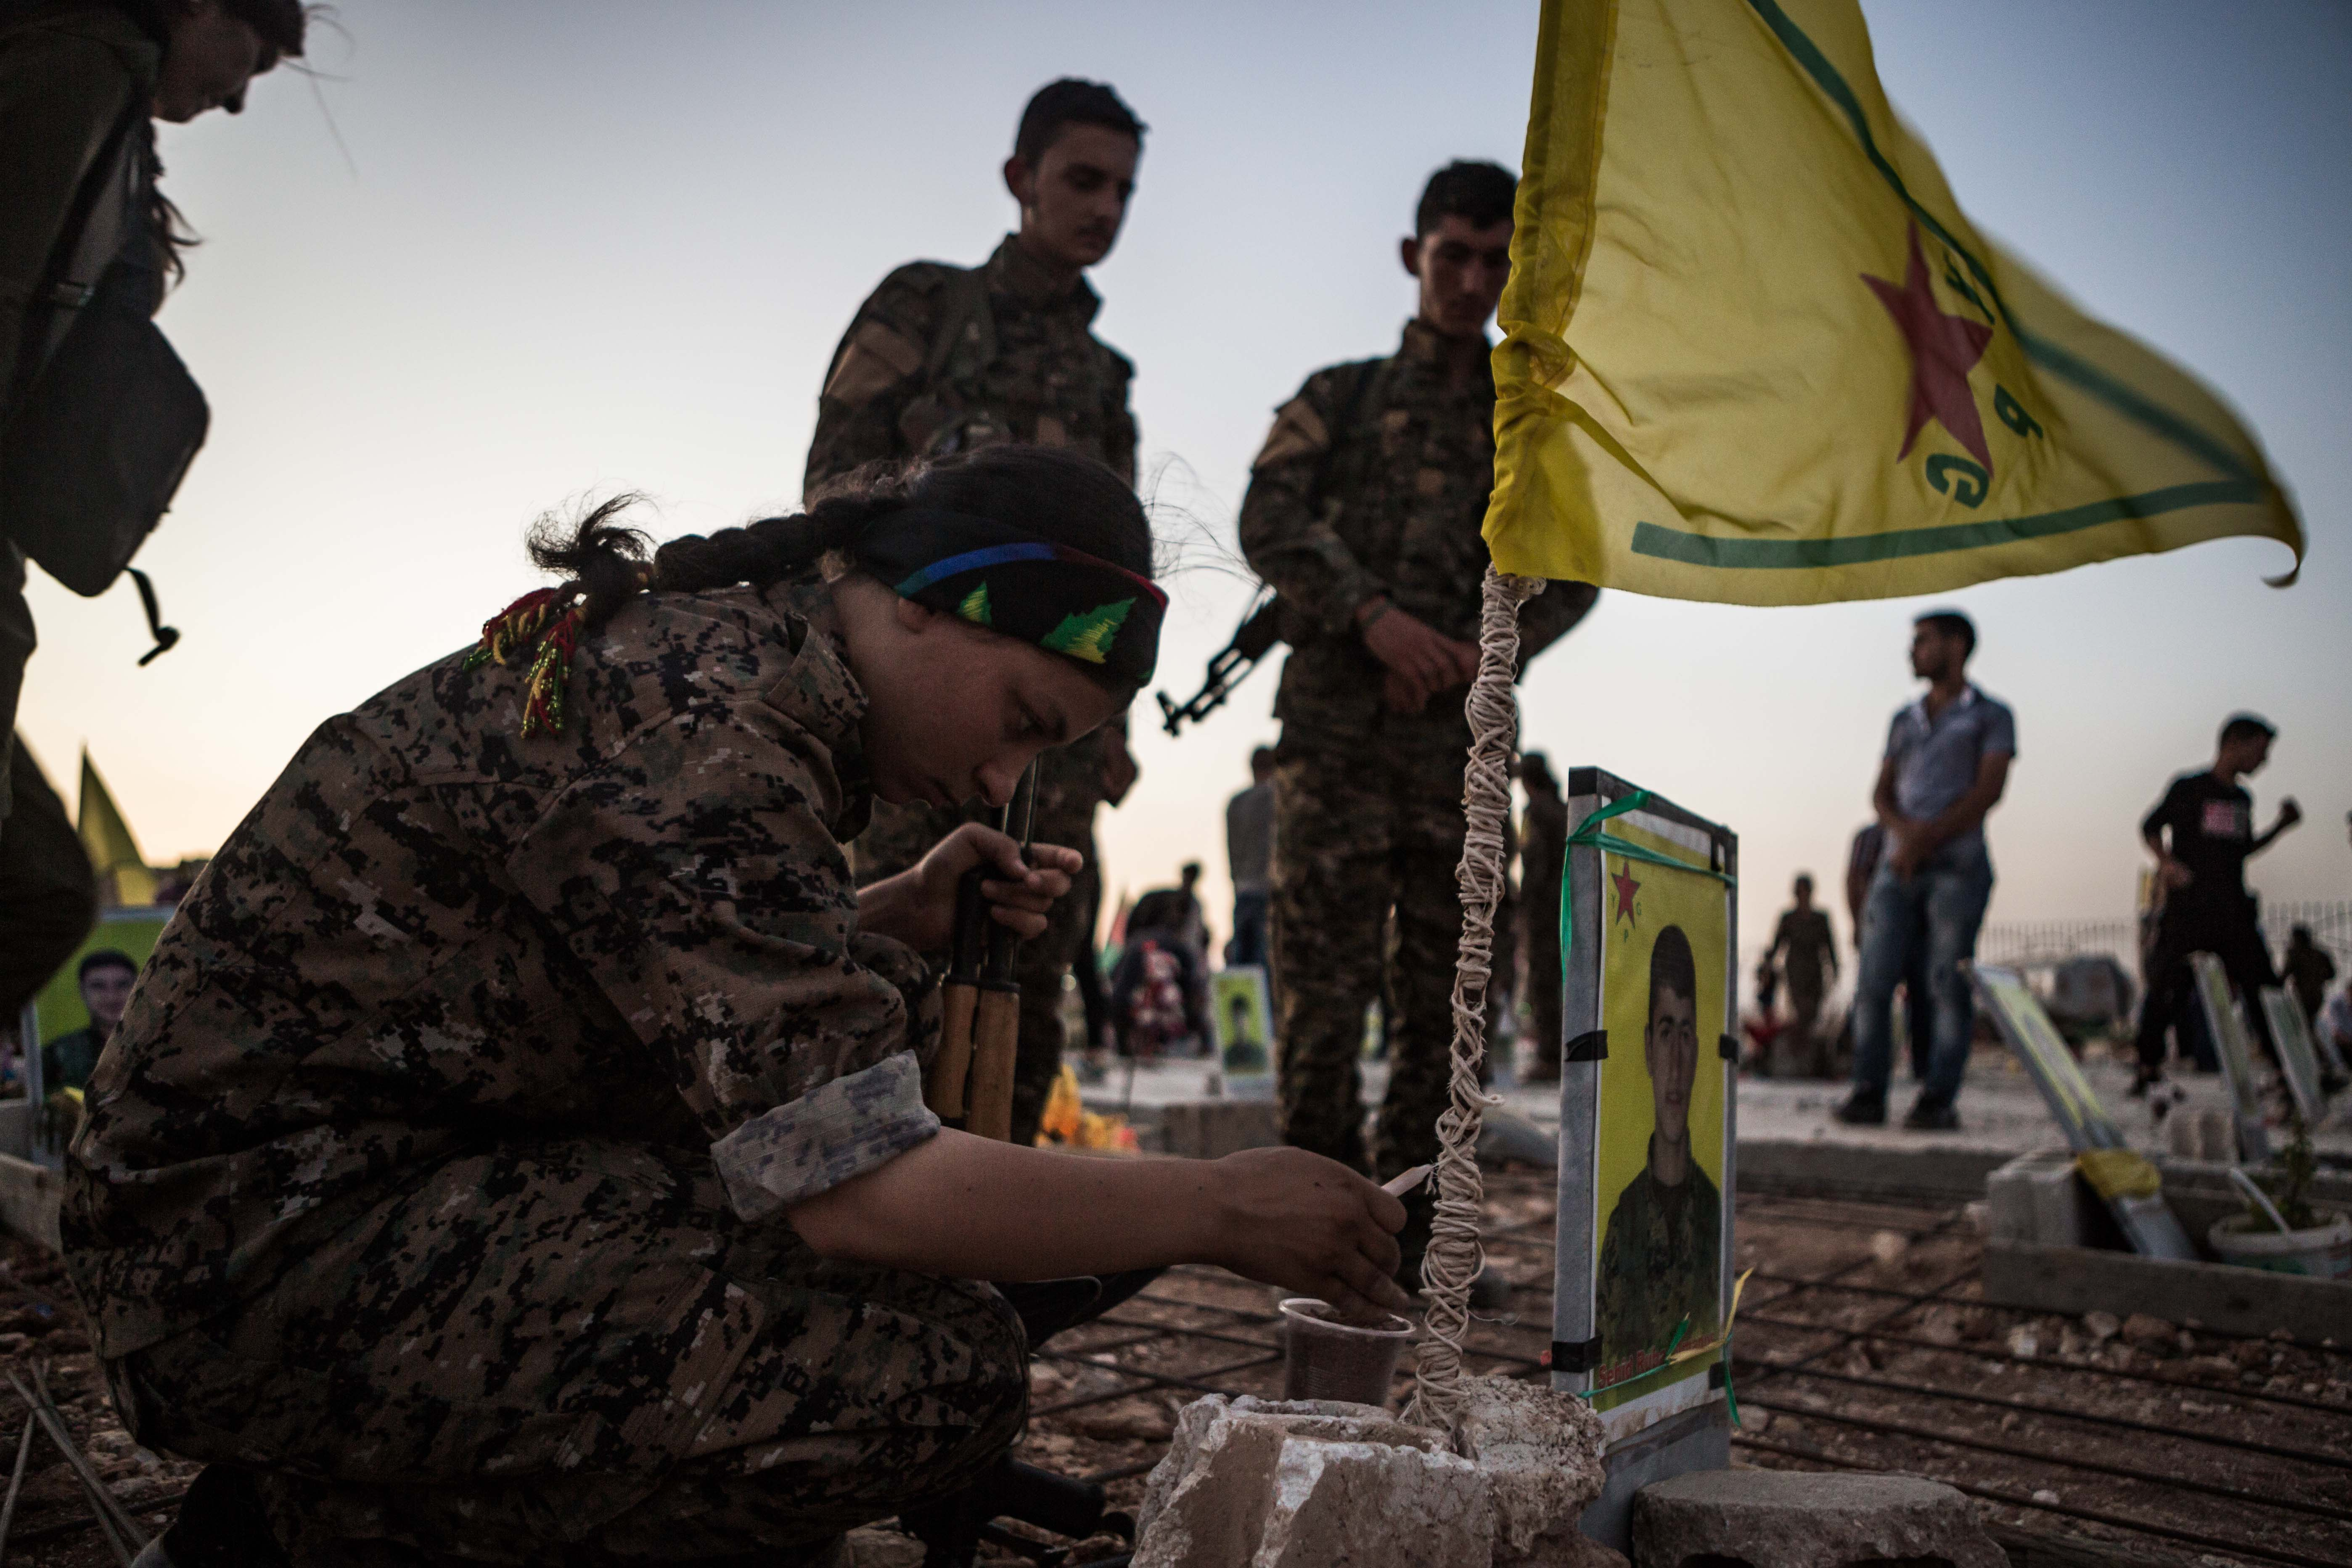 The Kurdish struggle in northern Syria